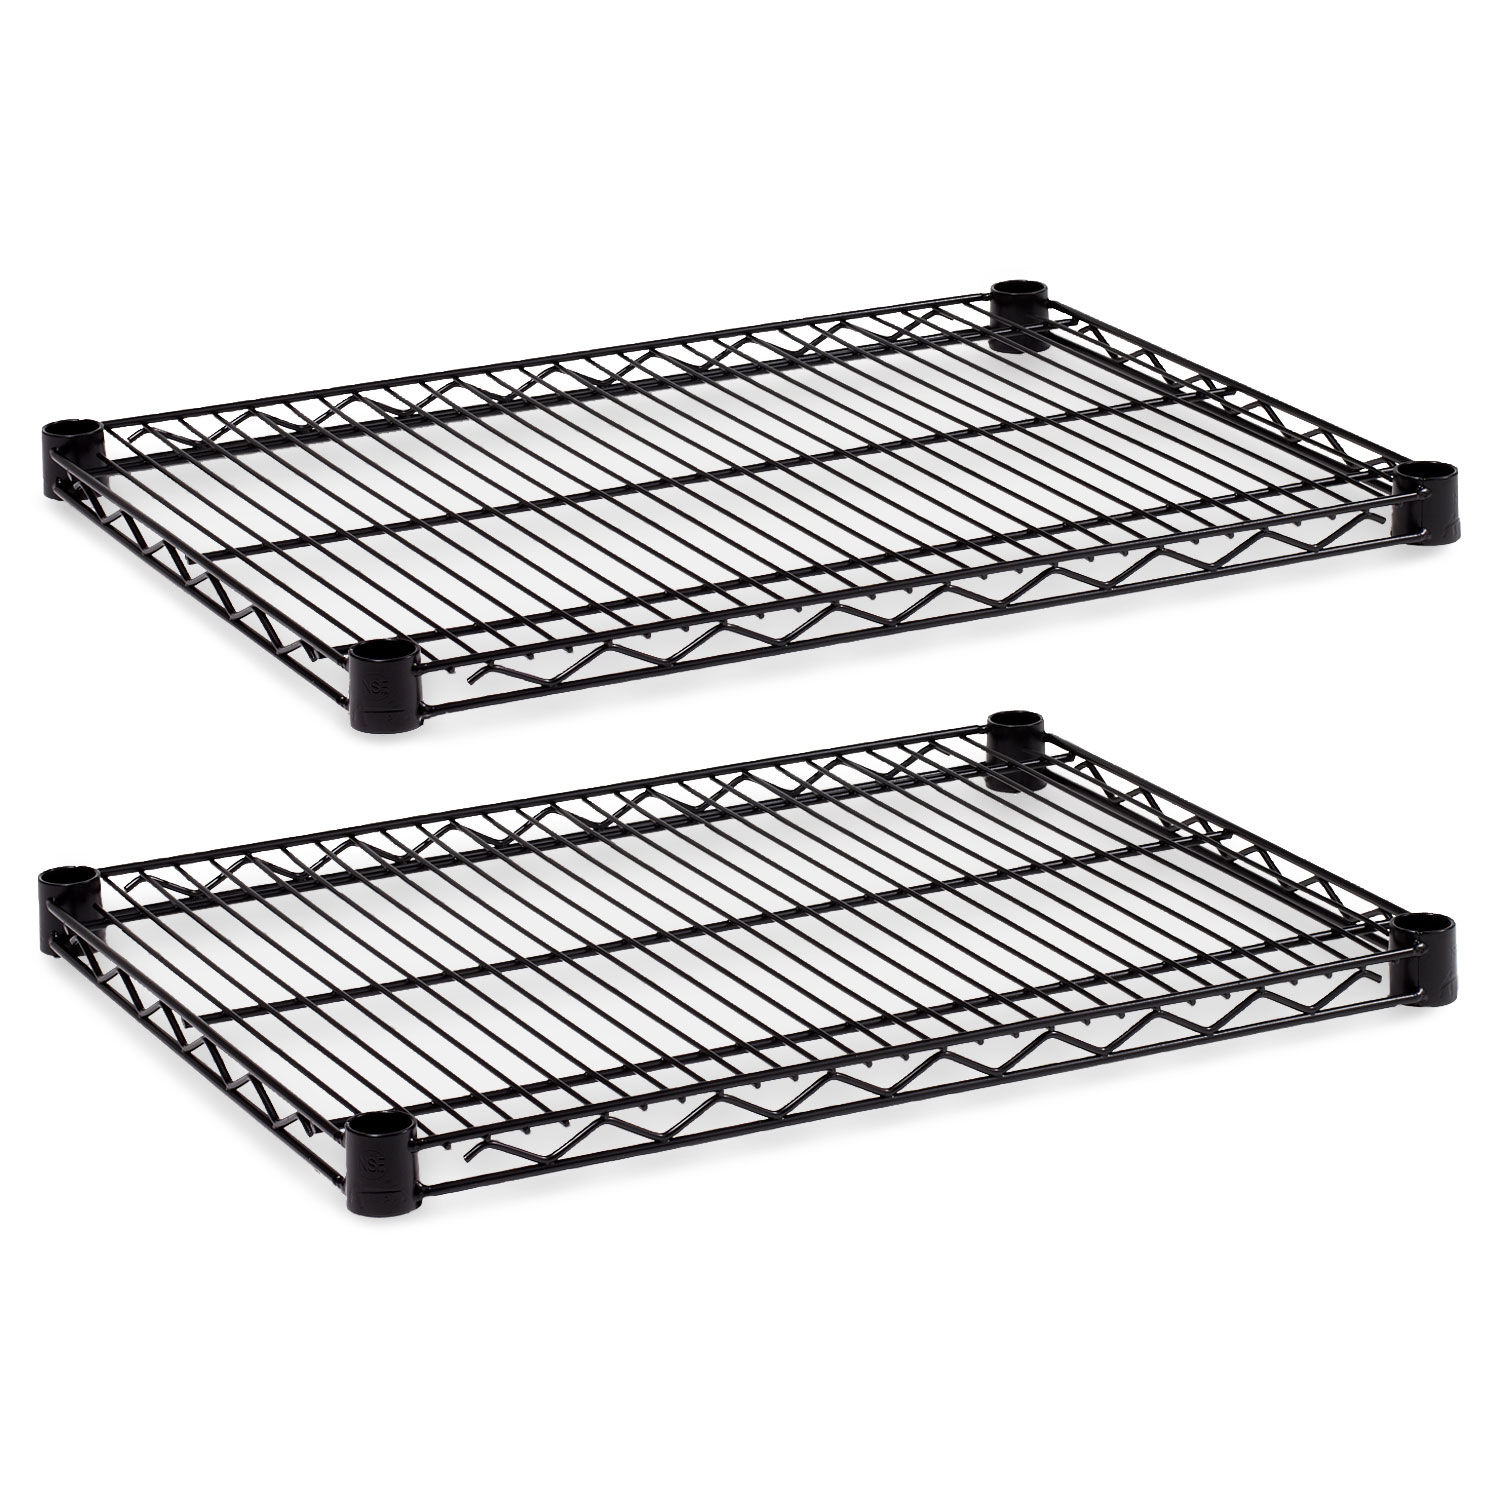 Amazing Industrial Wire Shelving Extra Wire Shelves 24W X 18D Black 2 Shelves Carton Download Free Architecture Designs Embacsunscenecom